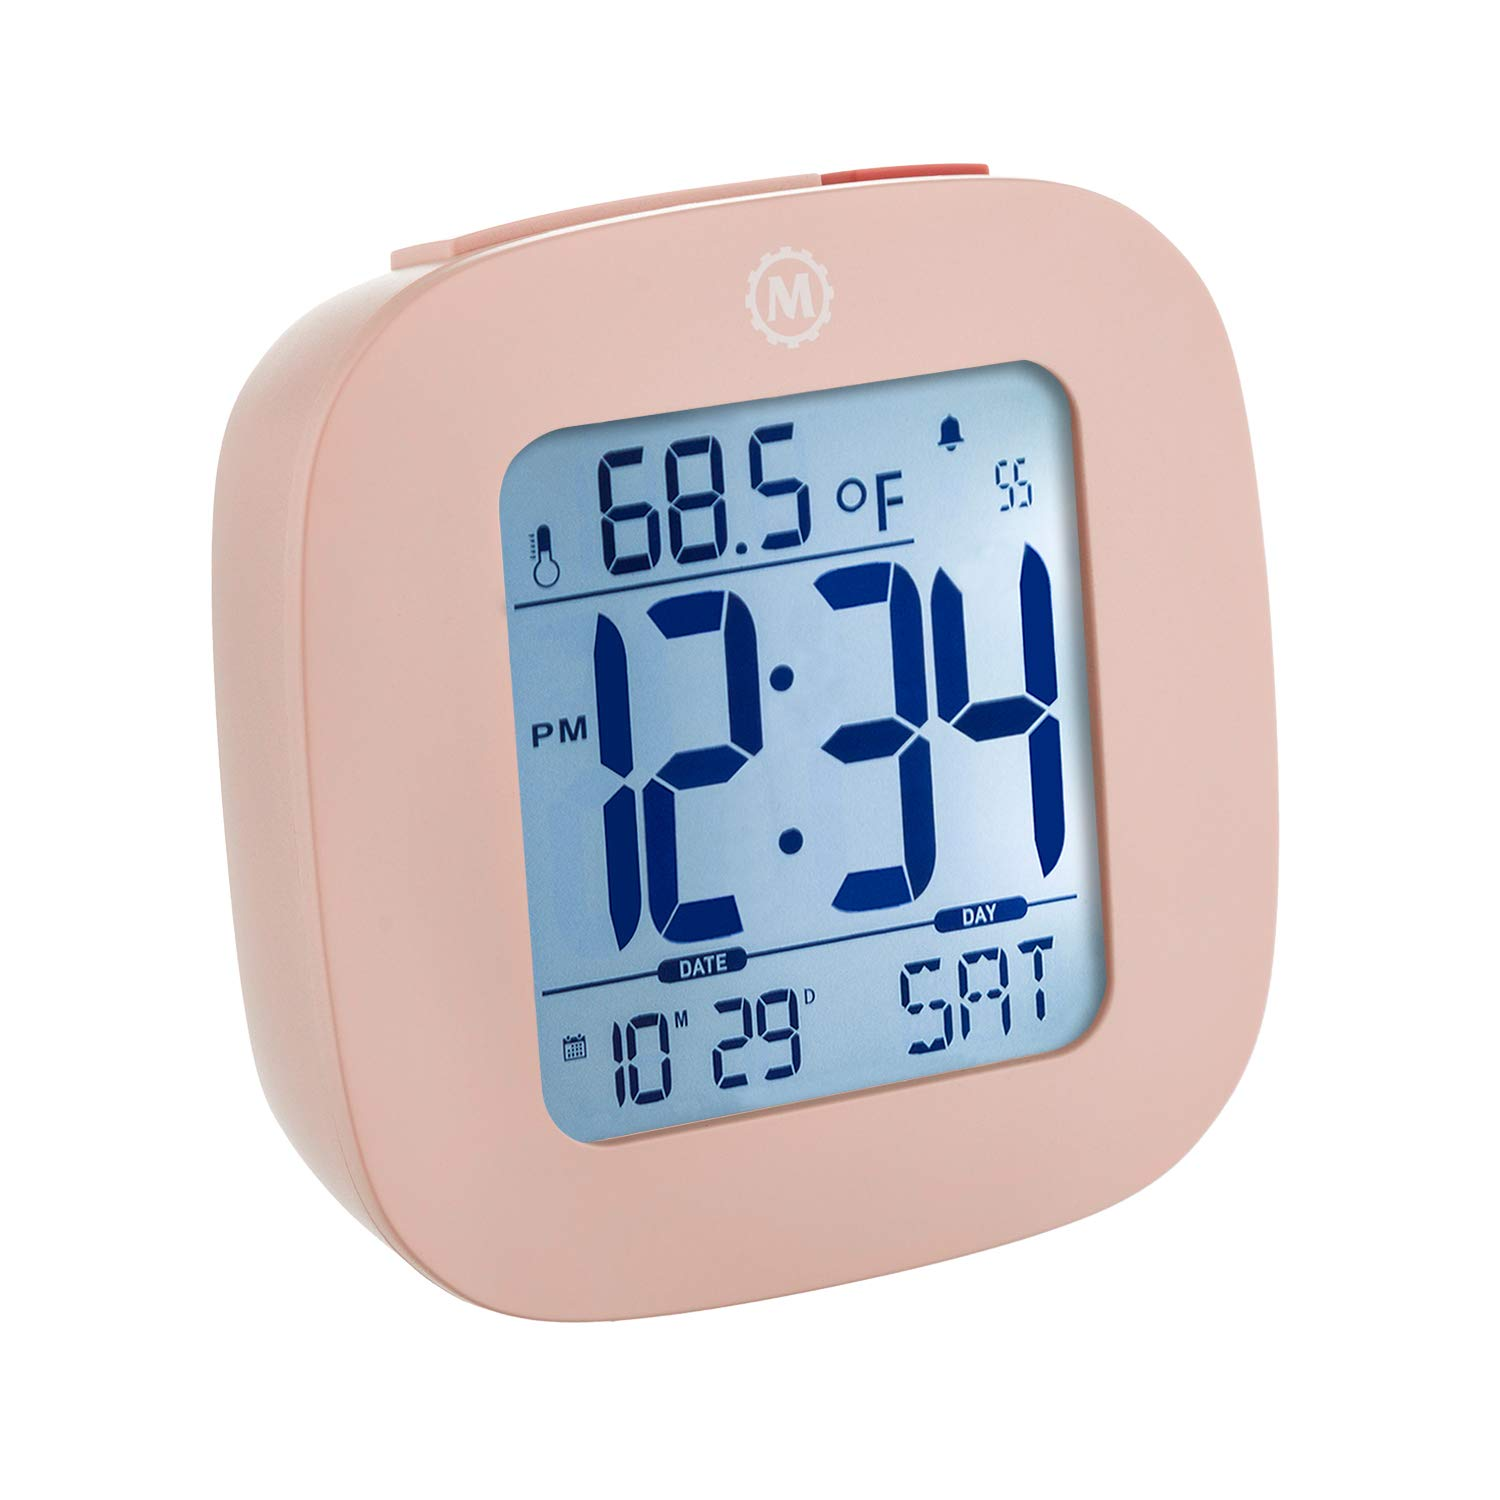 Marathon CL030058PI Small Alarm Clock with Snooze, Light, Calendar, Temperature and Date - Pink - Batteries Included